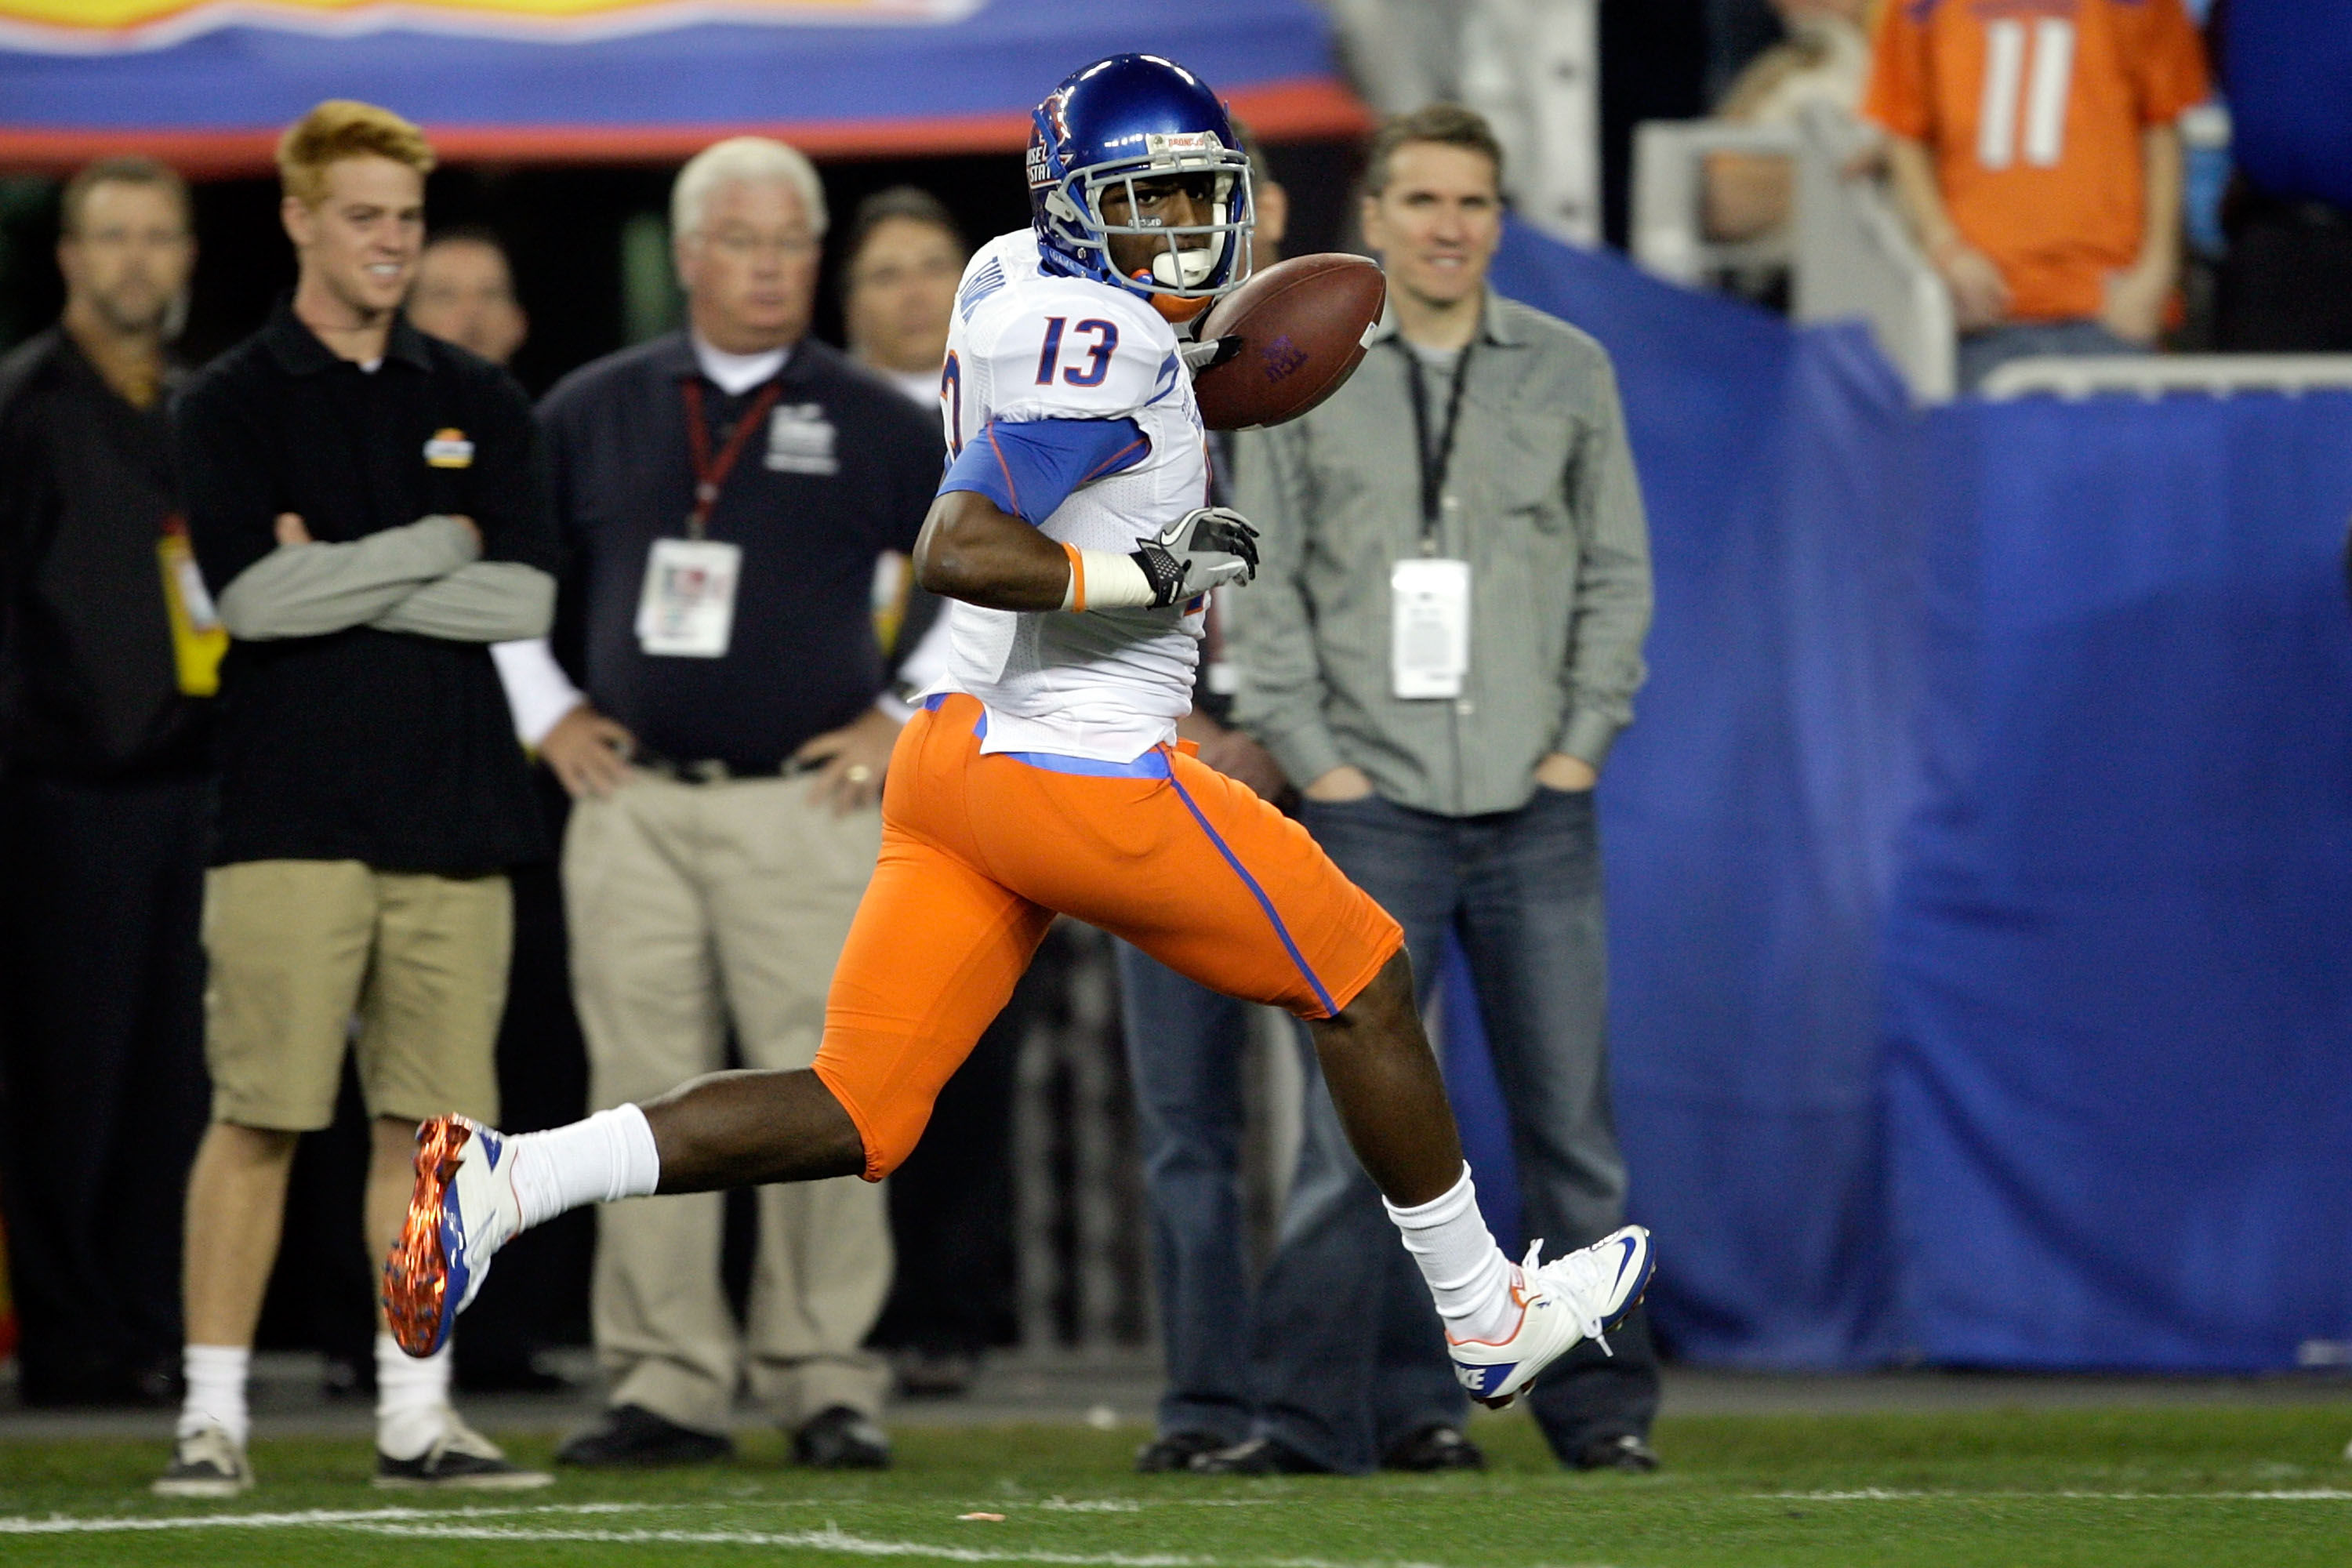 GLENDALE, AZ - JANUARY 04:  Brandyn Thompson #13 of the Boise State Broncos runs into the endzone after a 50-yard interception return for a touchdown in the first quarter against the TCU Horned Frogs during the Tostitos Fiesta Bowl at the Universtity of P